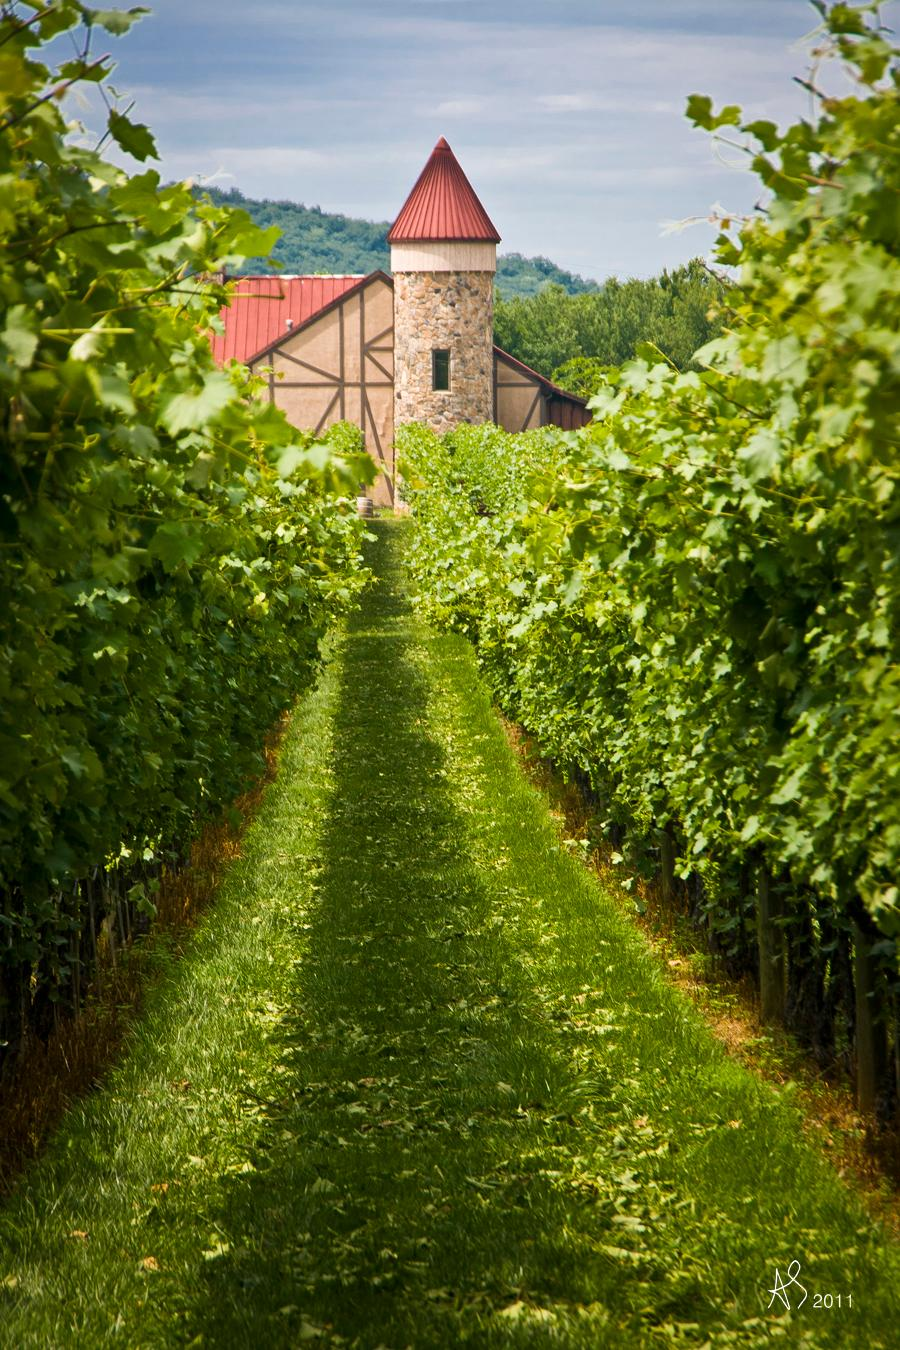 Wine buffs will want to spend any extra time in C-ville visiting its premier vineyard, Barboursville, which is known for making some of the best wines coming out of Virginia. The winery also boasts a restaurant and inn, if you're looking for a one-stop shop.(Image: Alex Streyer/ Visit Charlottesville)